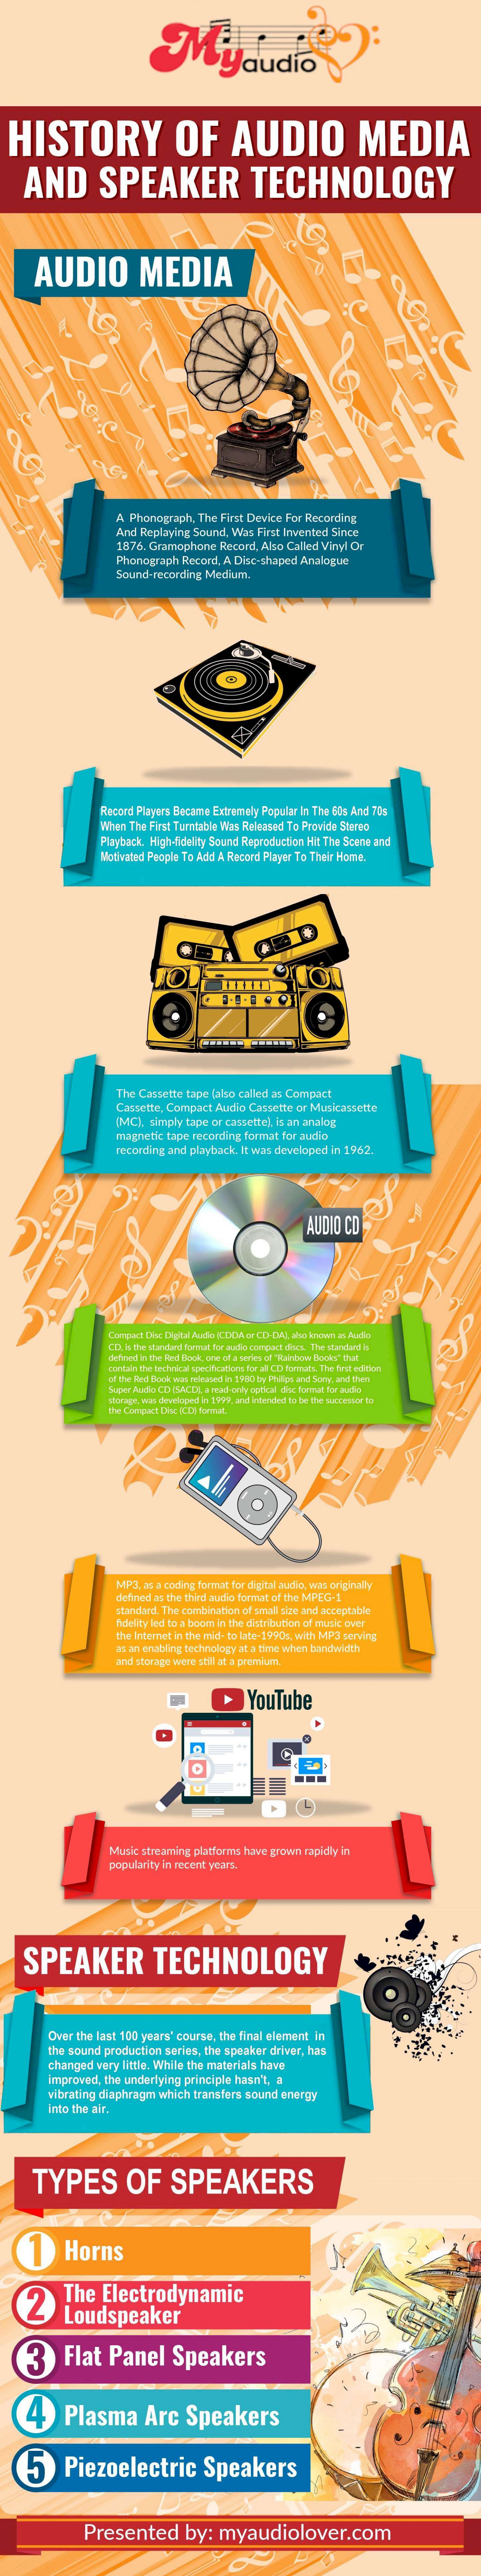 History of Audio Media and Speakers Infographic